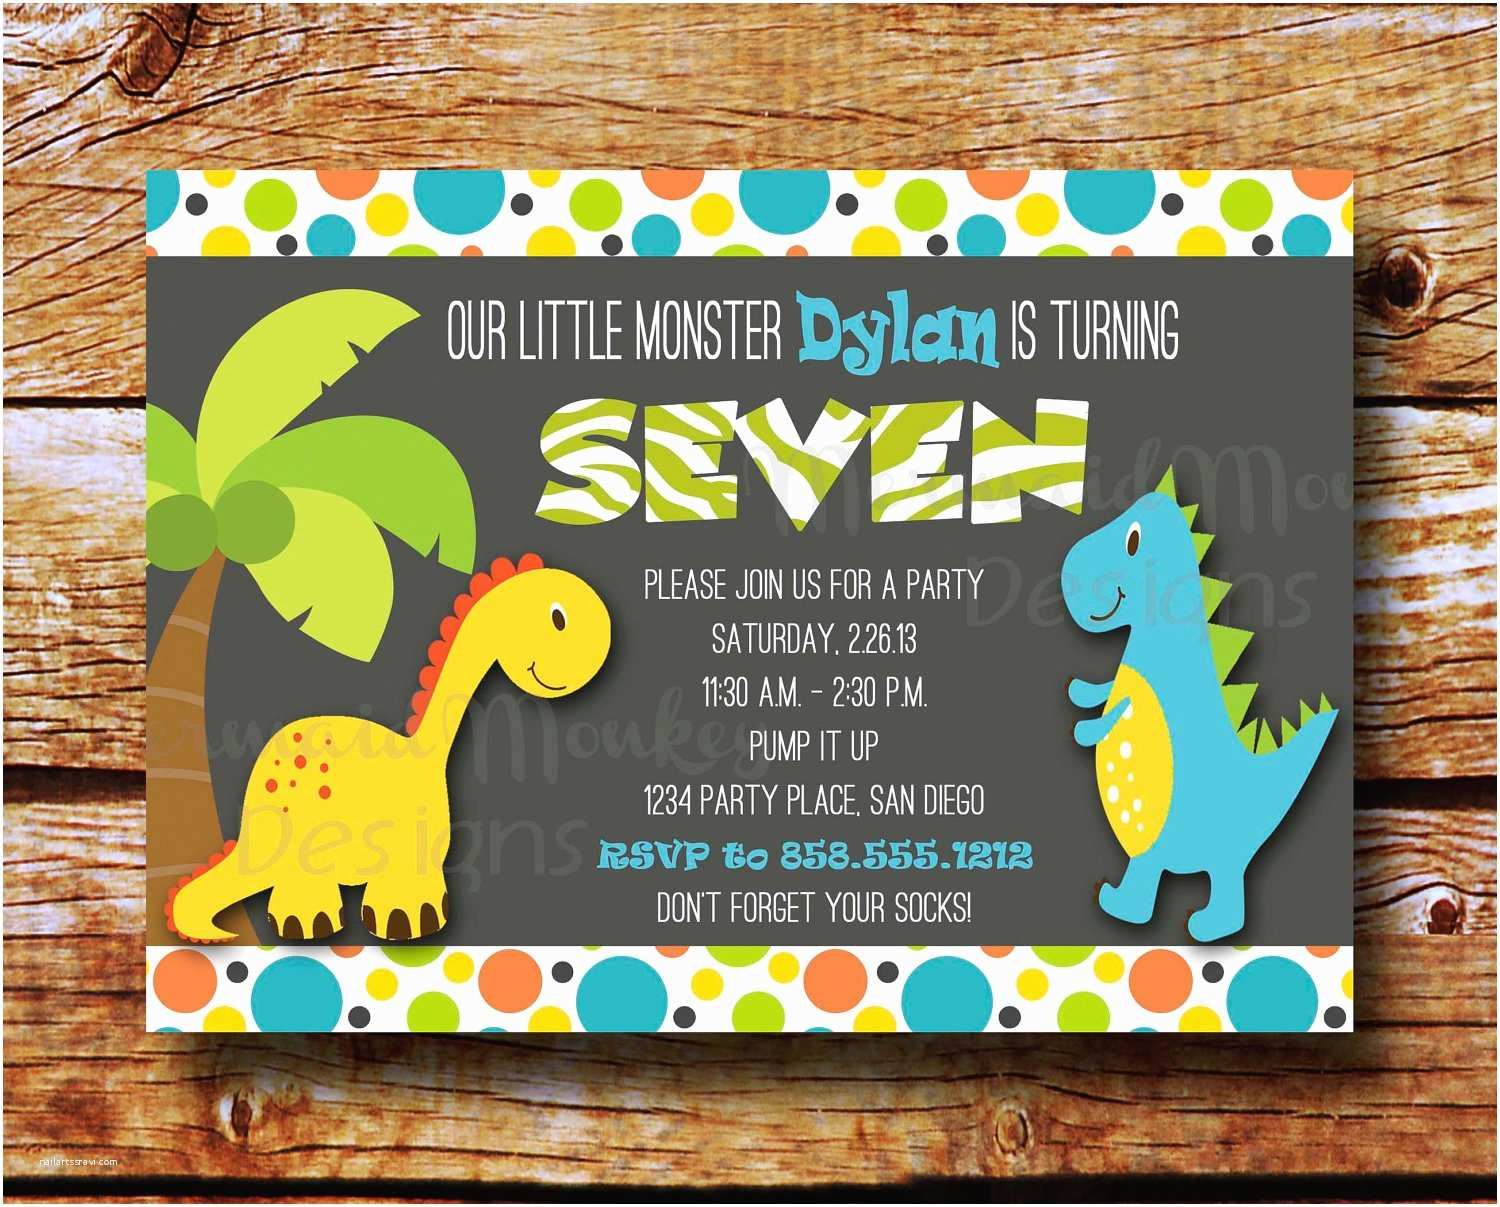 Dinosaur Birthday Party Invitations Dinosaur Invitation Birthday Party by Mermaidmonkeydesigns